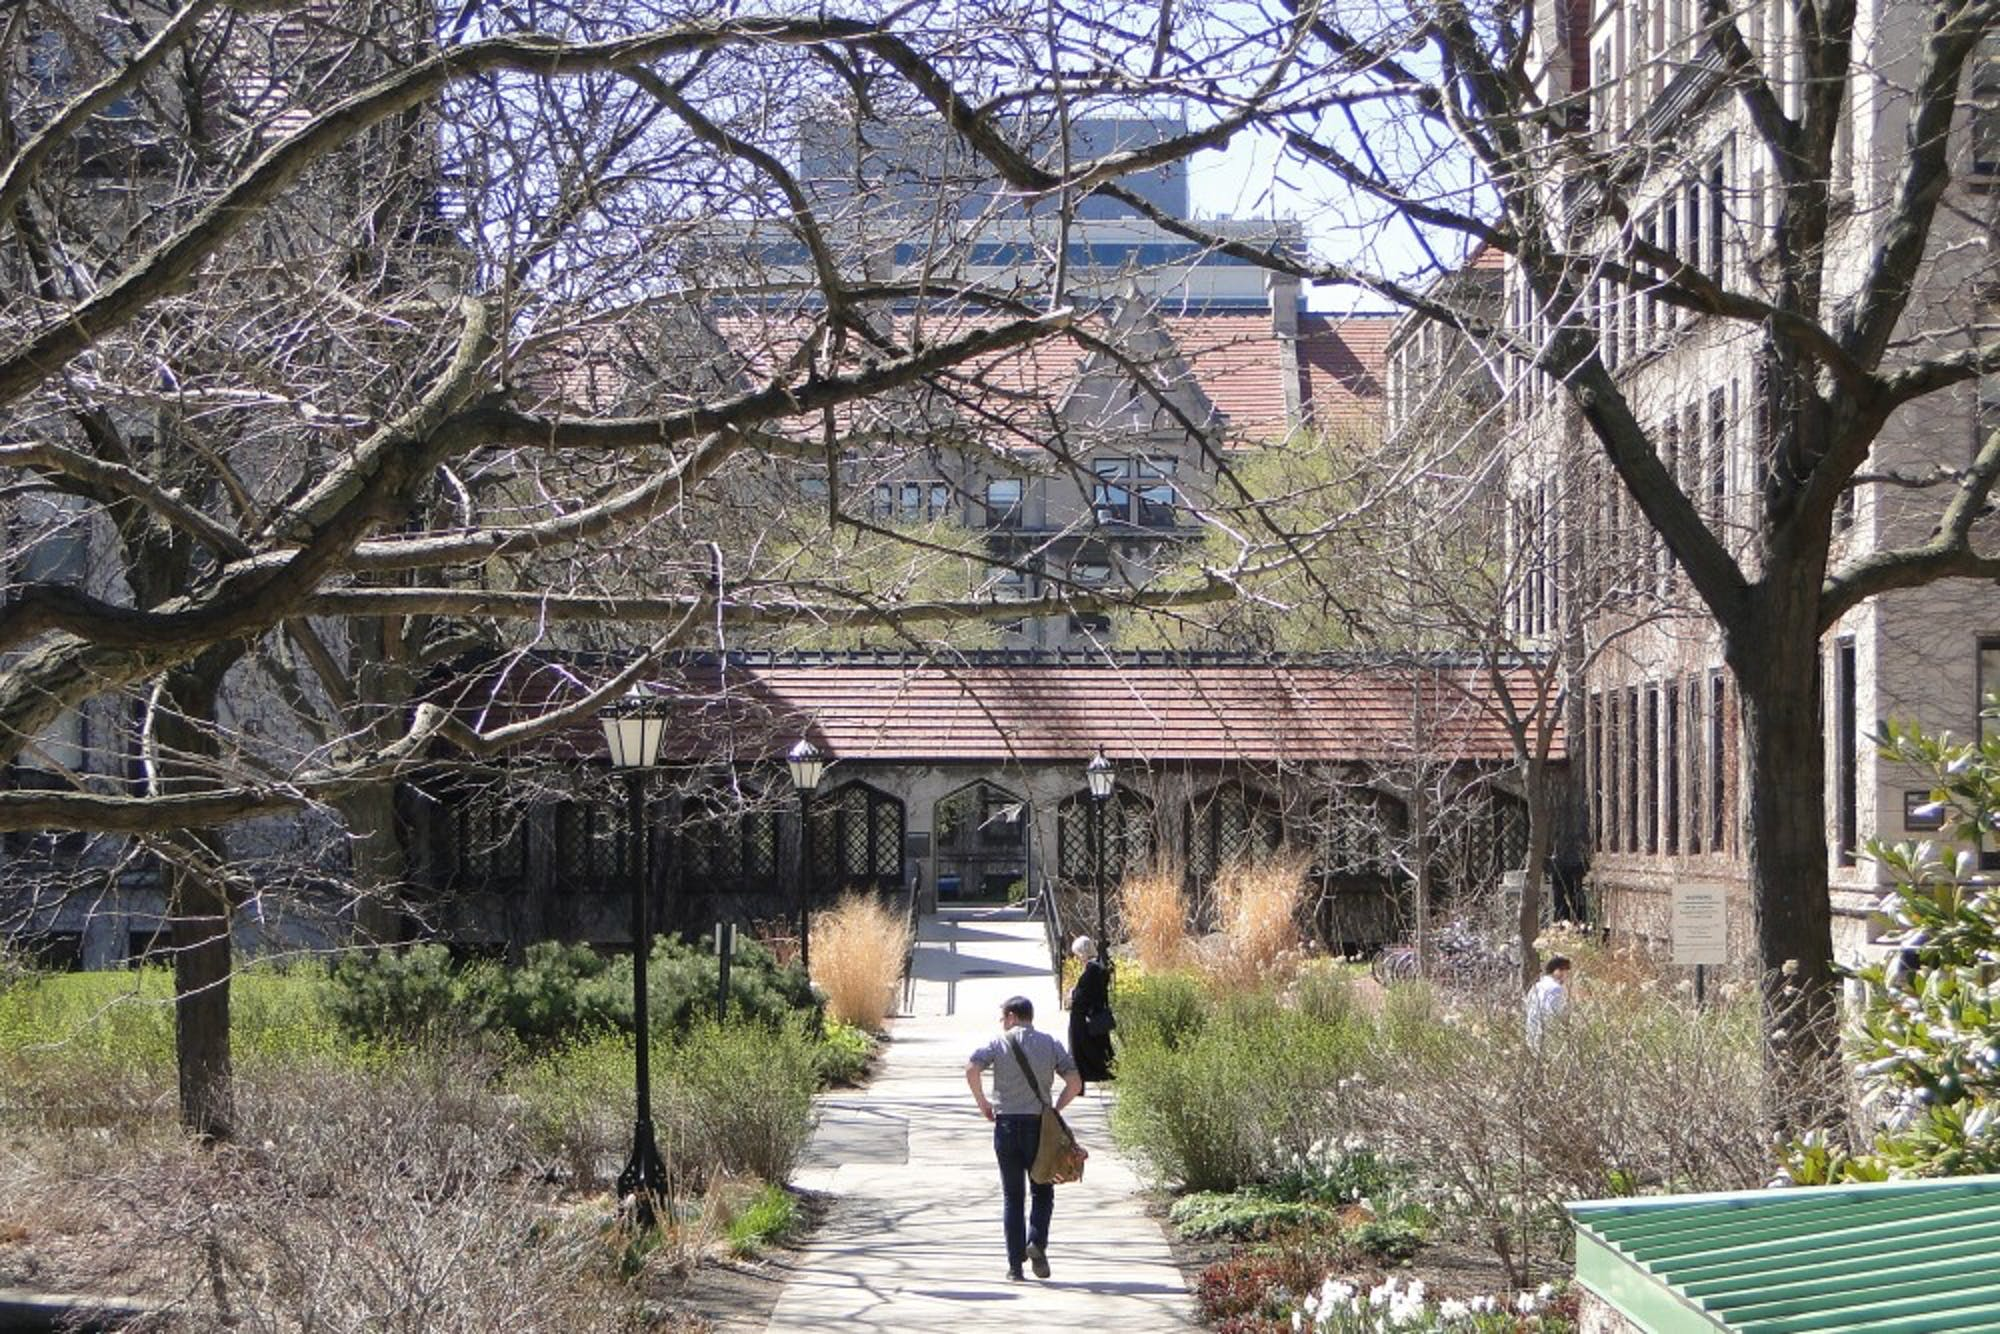 central_campus_scene__university_of_chicago__illinois__usa__05